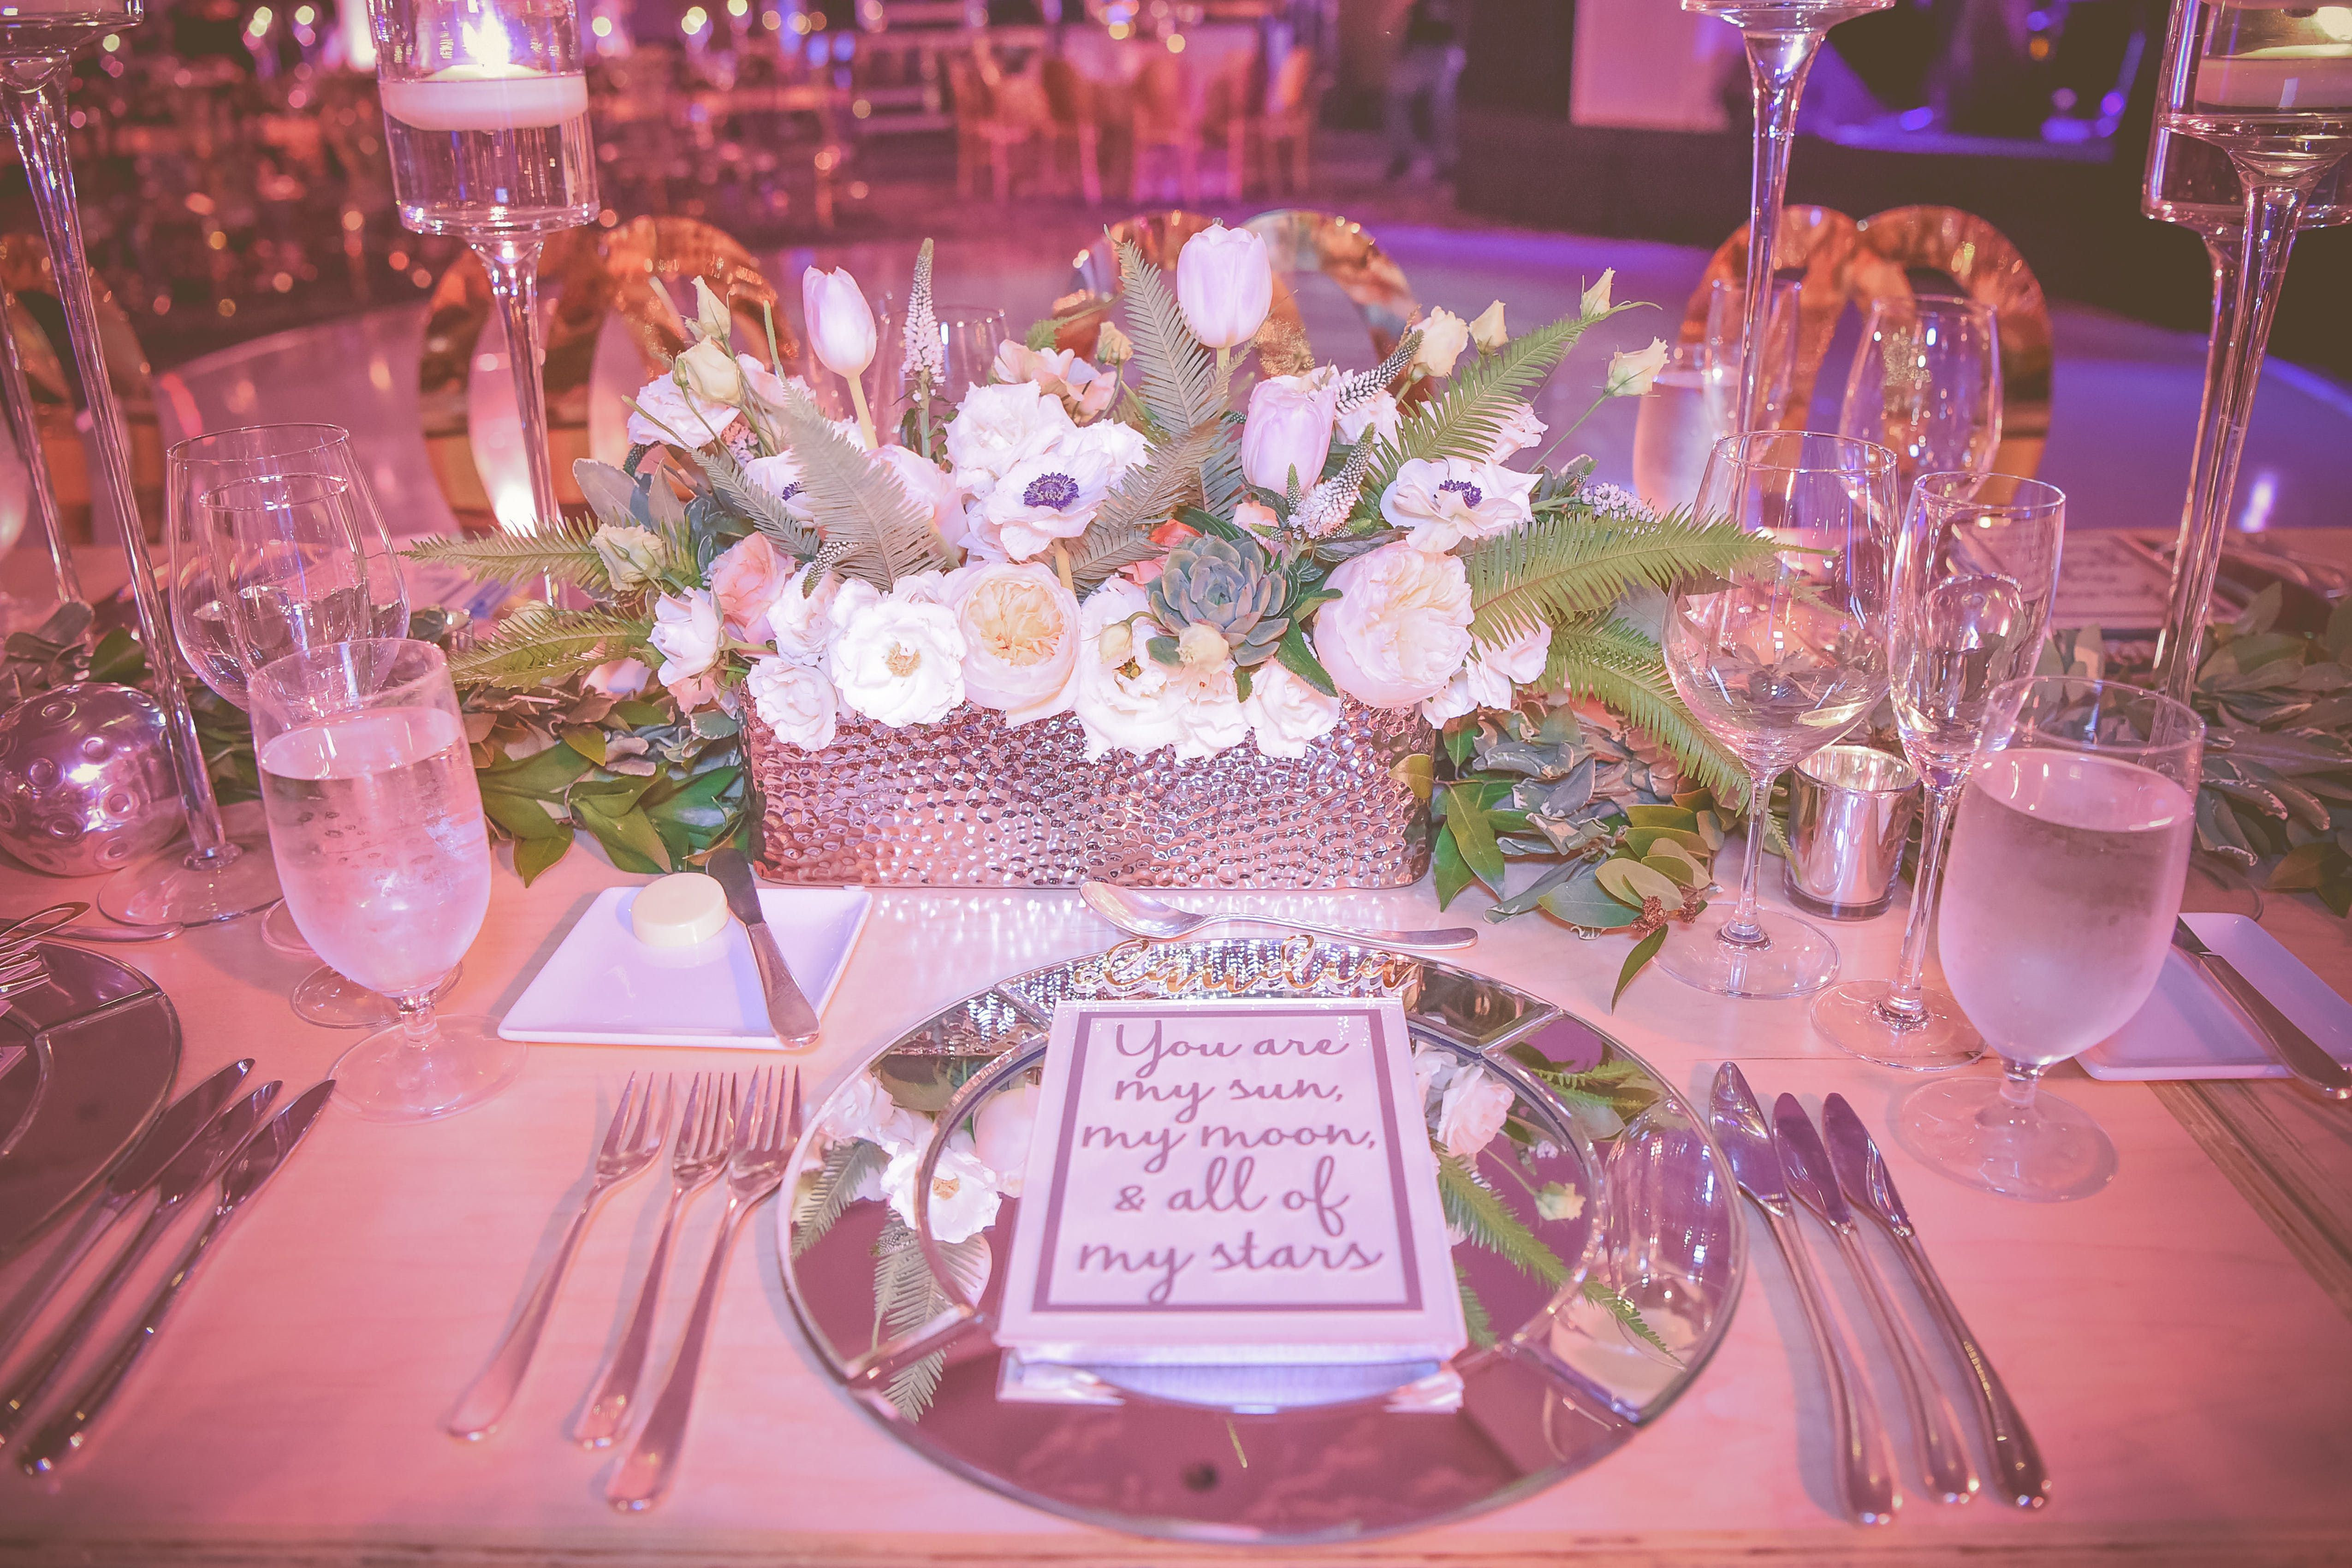 Romantic St Regis Bal Harbour Wedding Party Rentals And Decor By Gilded Group Decor Miami Event Design Miam With Images Wedding Decorations Event Decor Floral Wedding